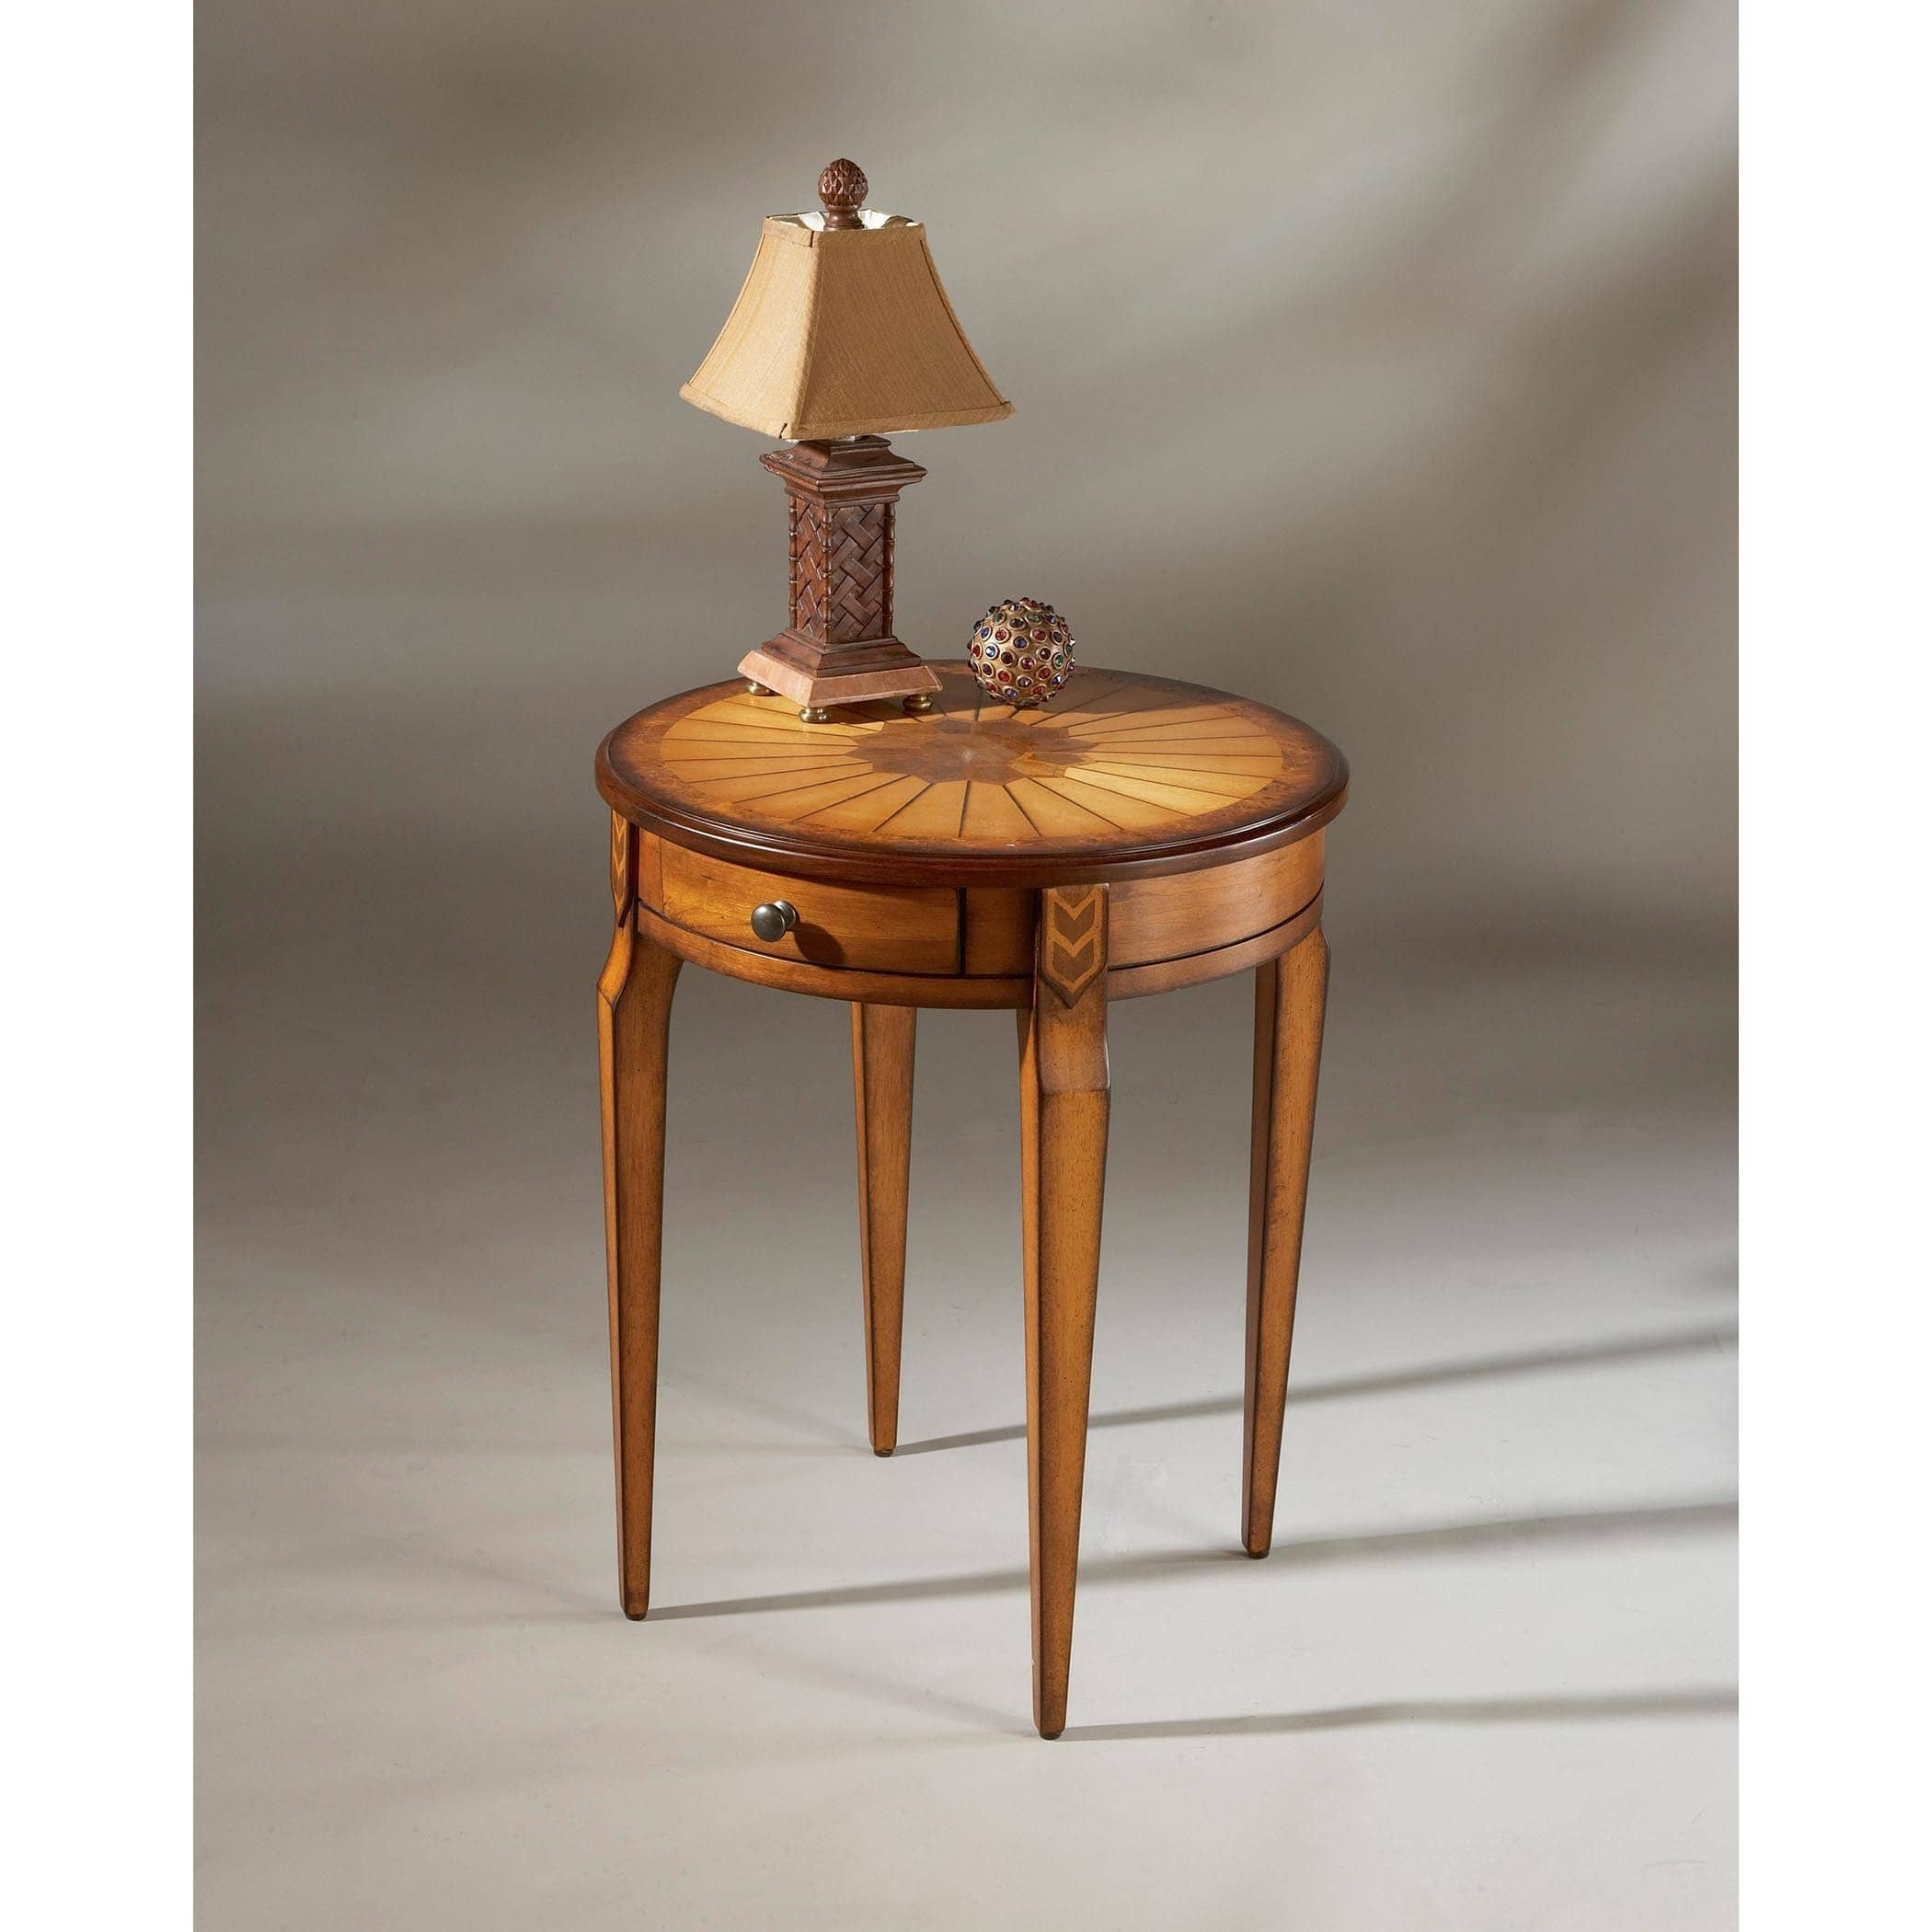 handmade butler archer olive ash burl end table free side wood accent shipping today aluminum marble top pub set tablecloth for square black mirrored glass bedside tables small